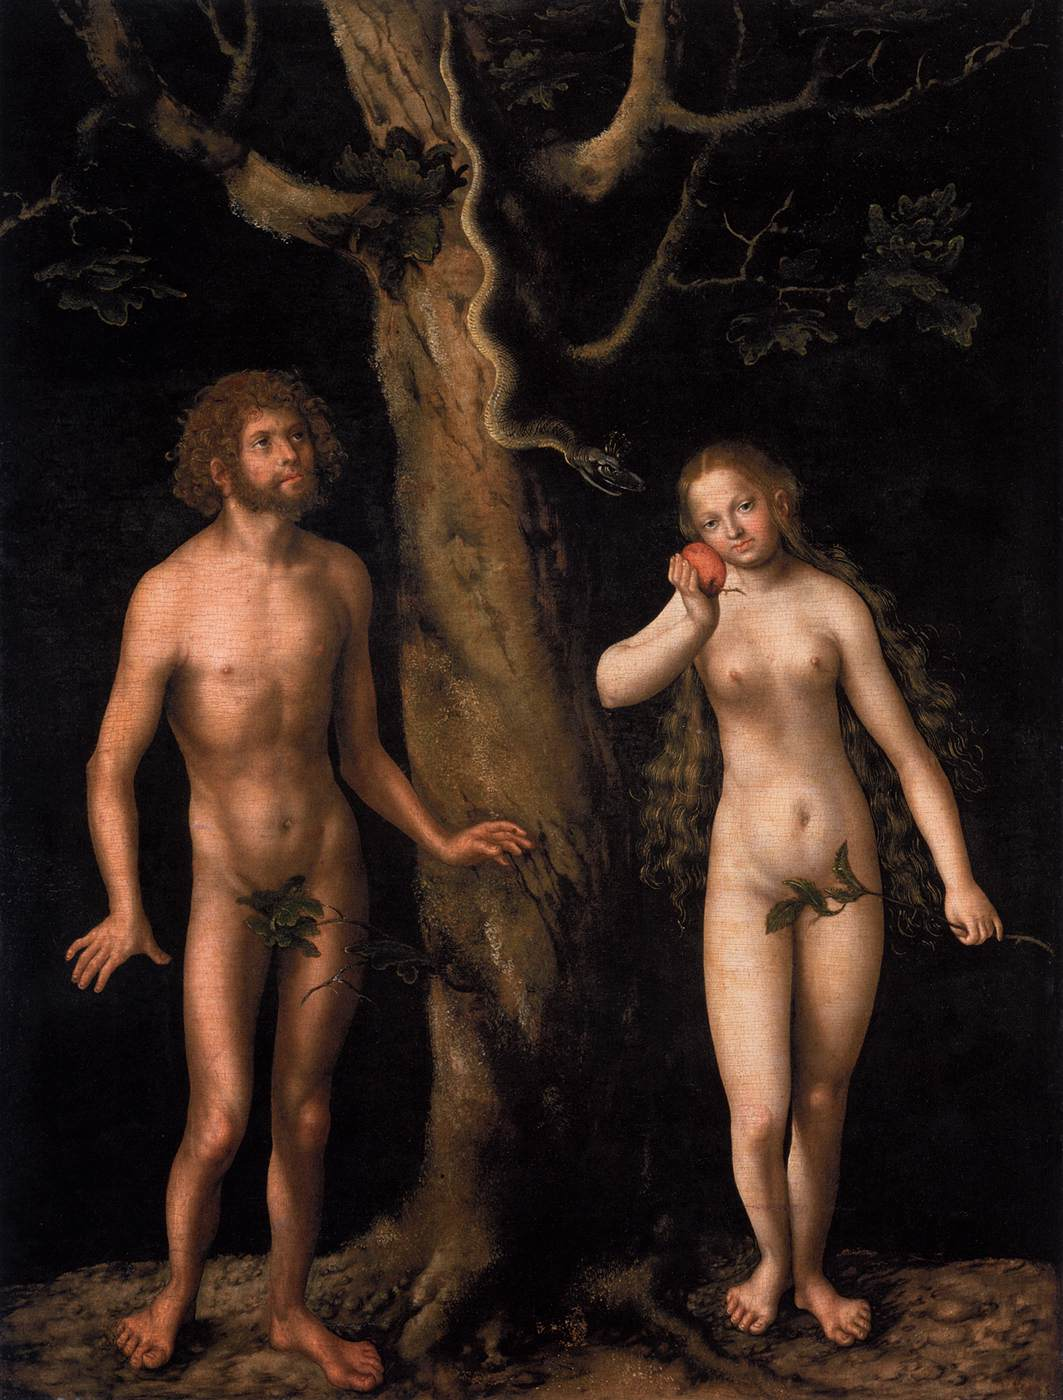 Adam And Eve Sex Pics web gallery of art, searchable fine arts image database